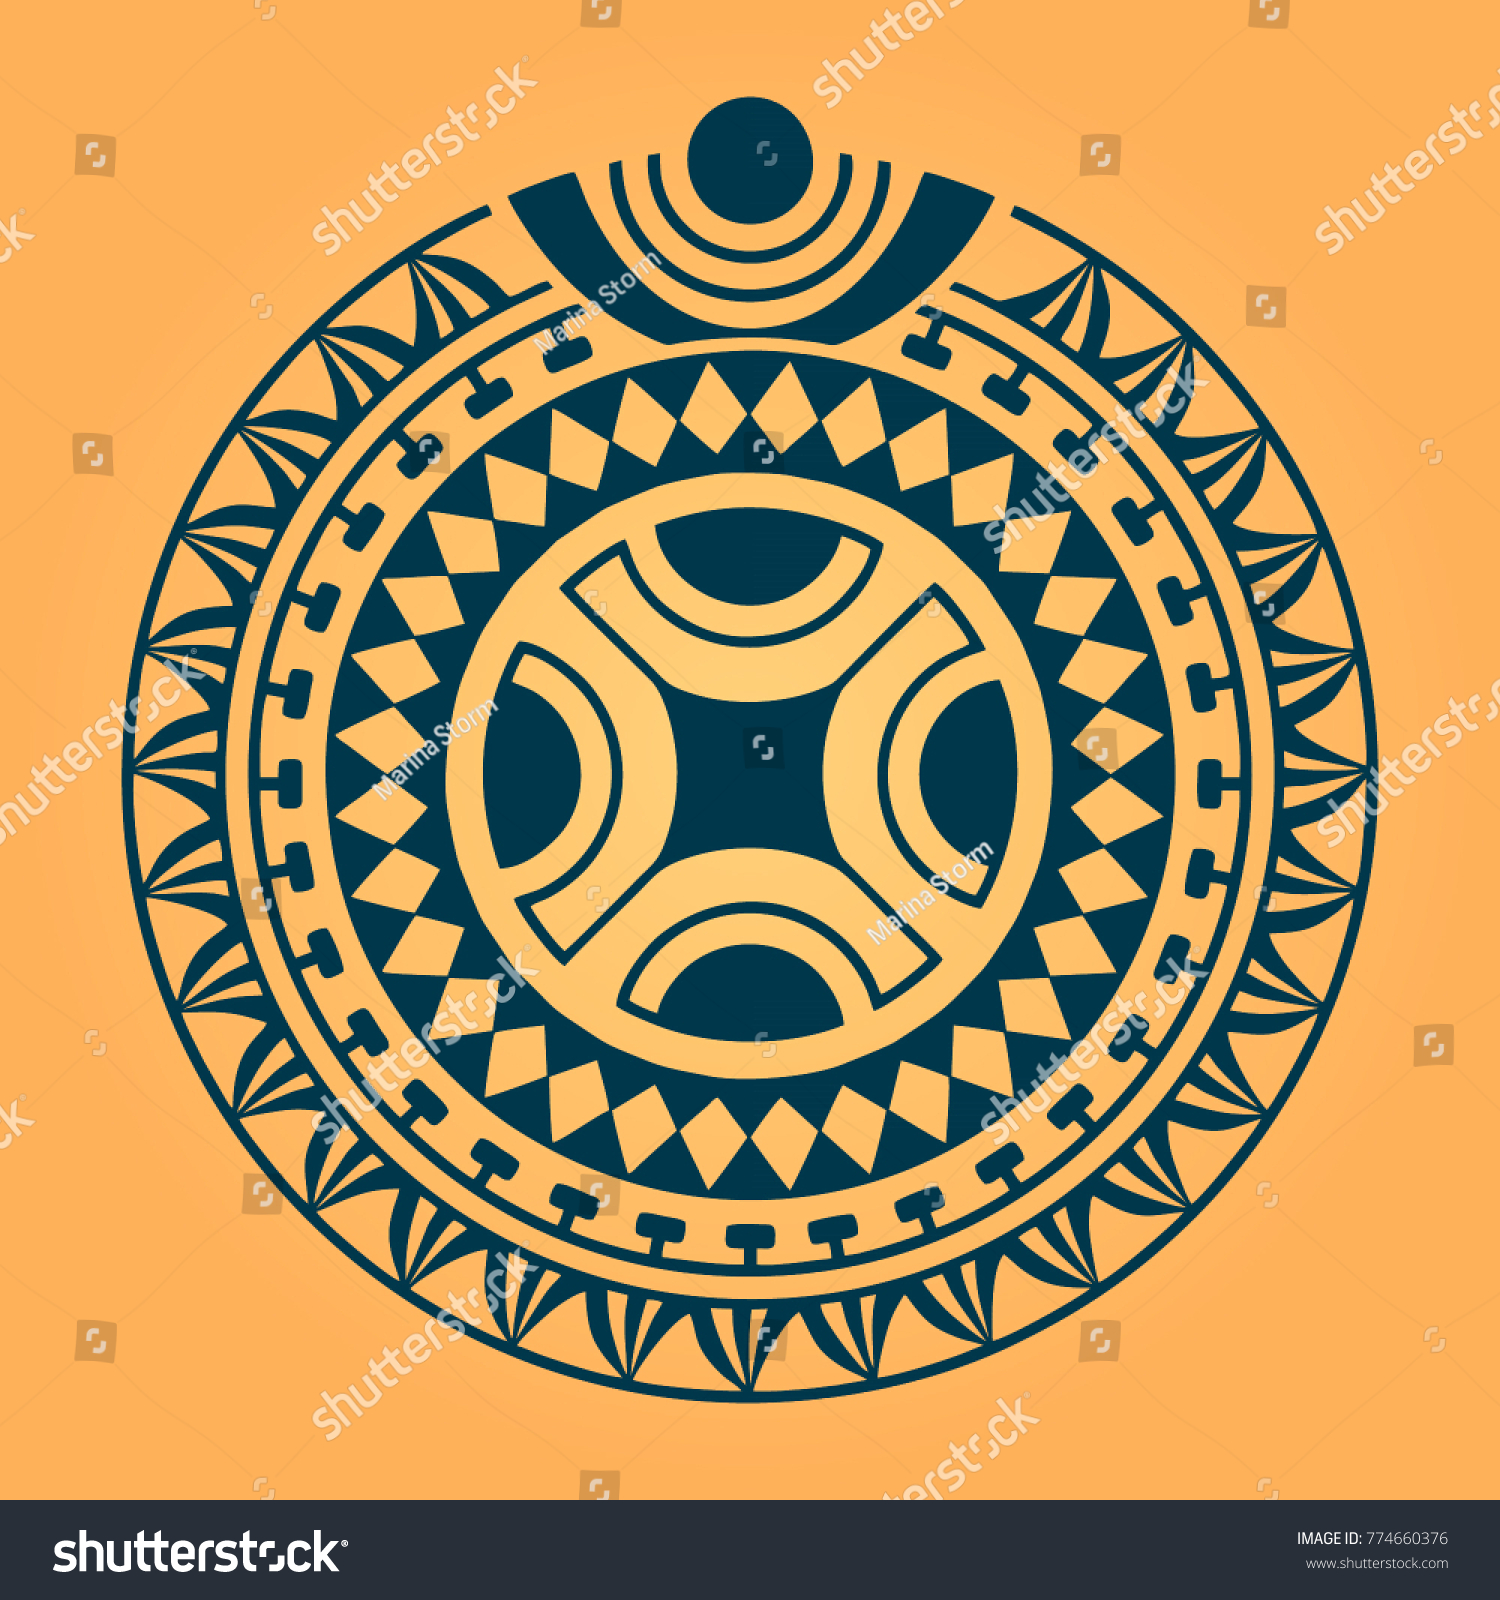 Round Sketch Polynesian Maori Style Tattoo Stock Vector (Royalty ...